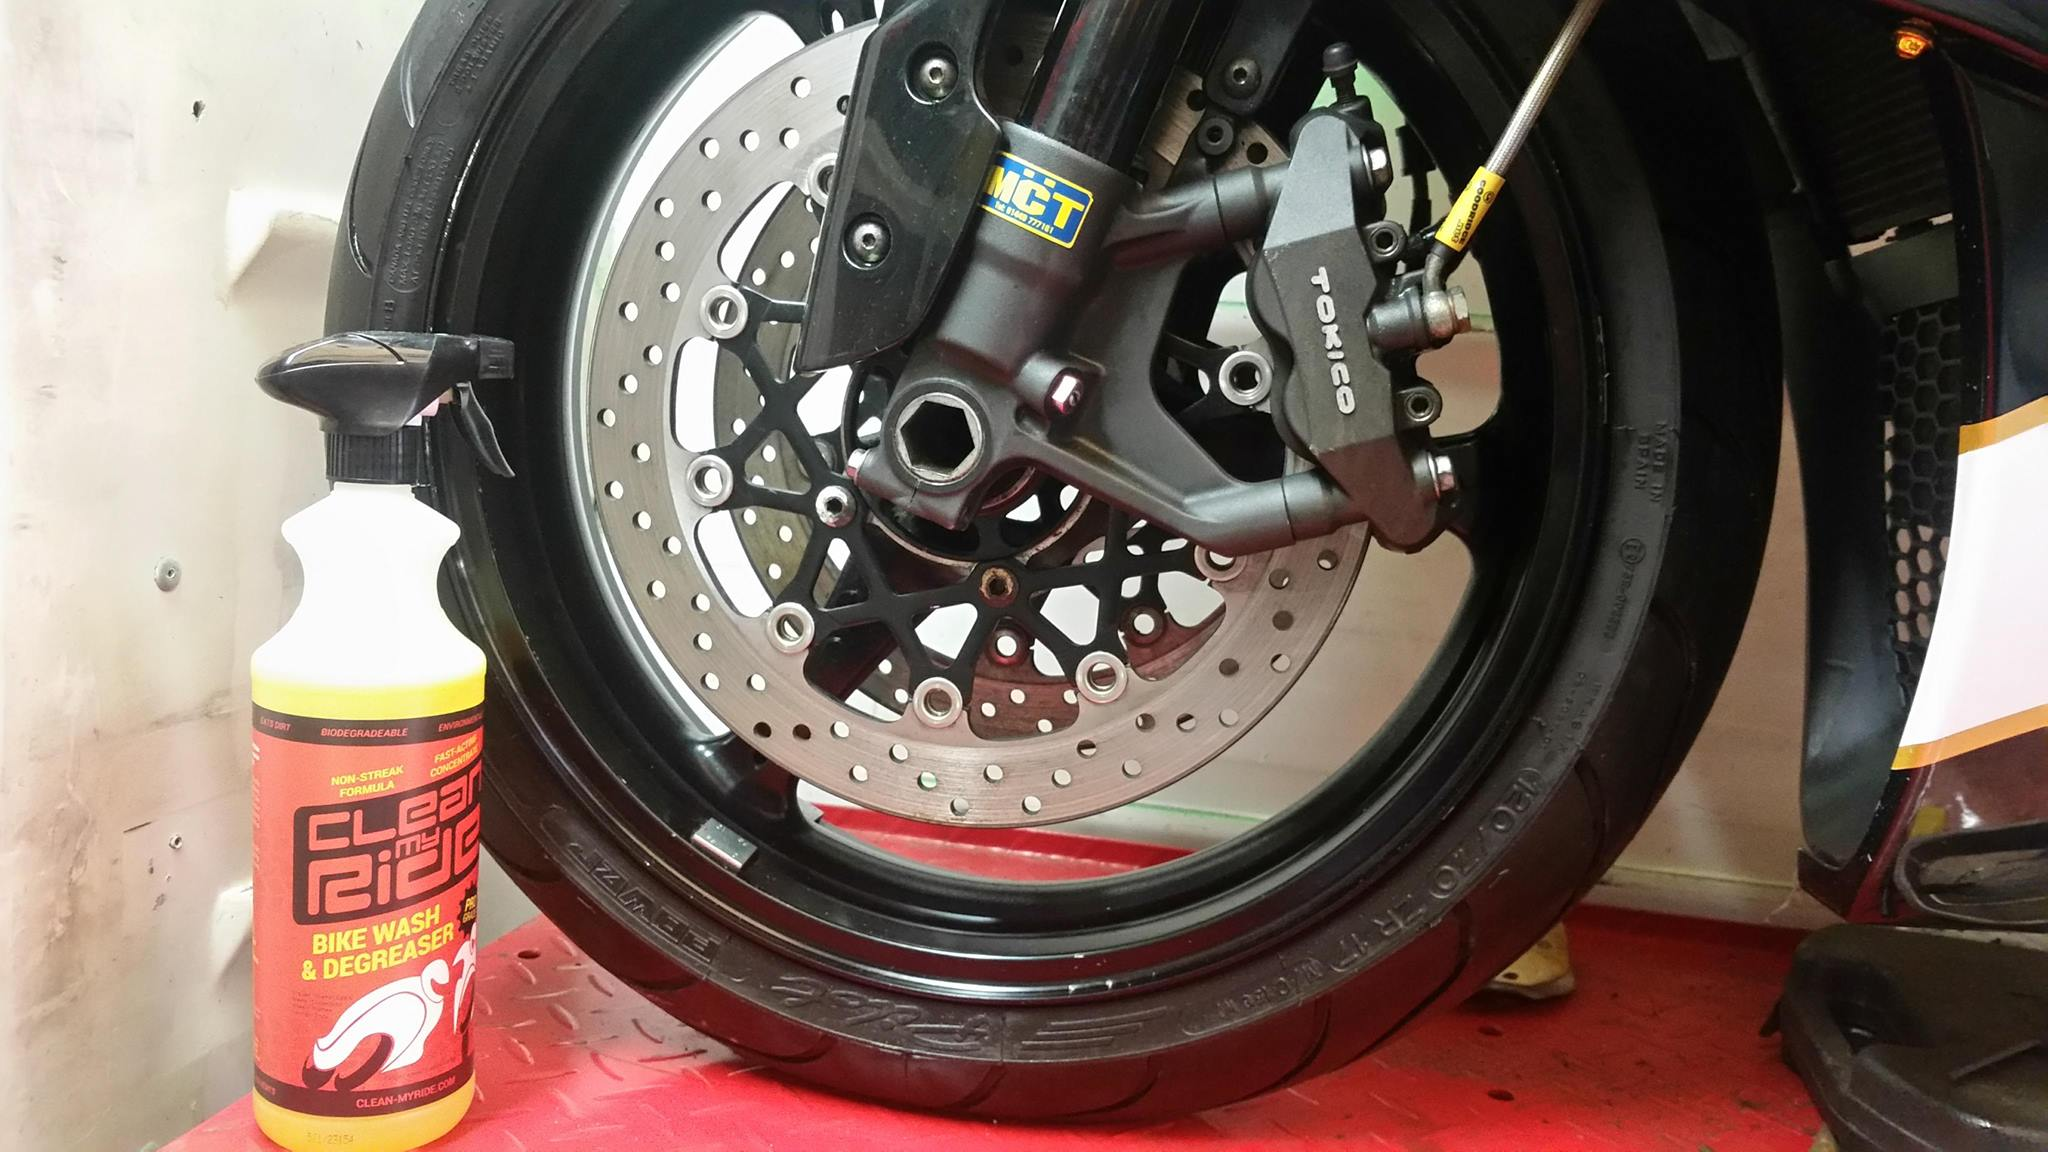 Clean MyRide combined bikewash degreaser is safe on all surfaces. Perfect for cleaning swingarms, paintwork, wheels, plastics including aluminium. It's non-caustic, non-streak, environmentally friendly and biodegradable.